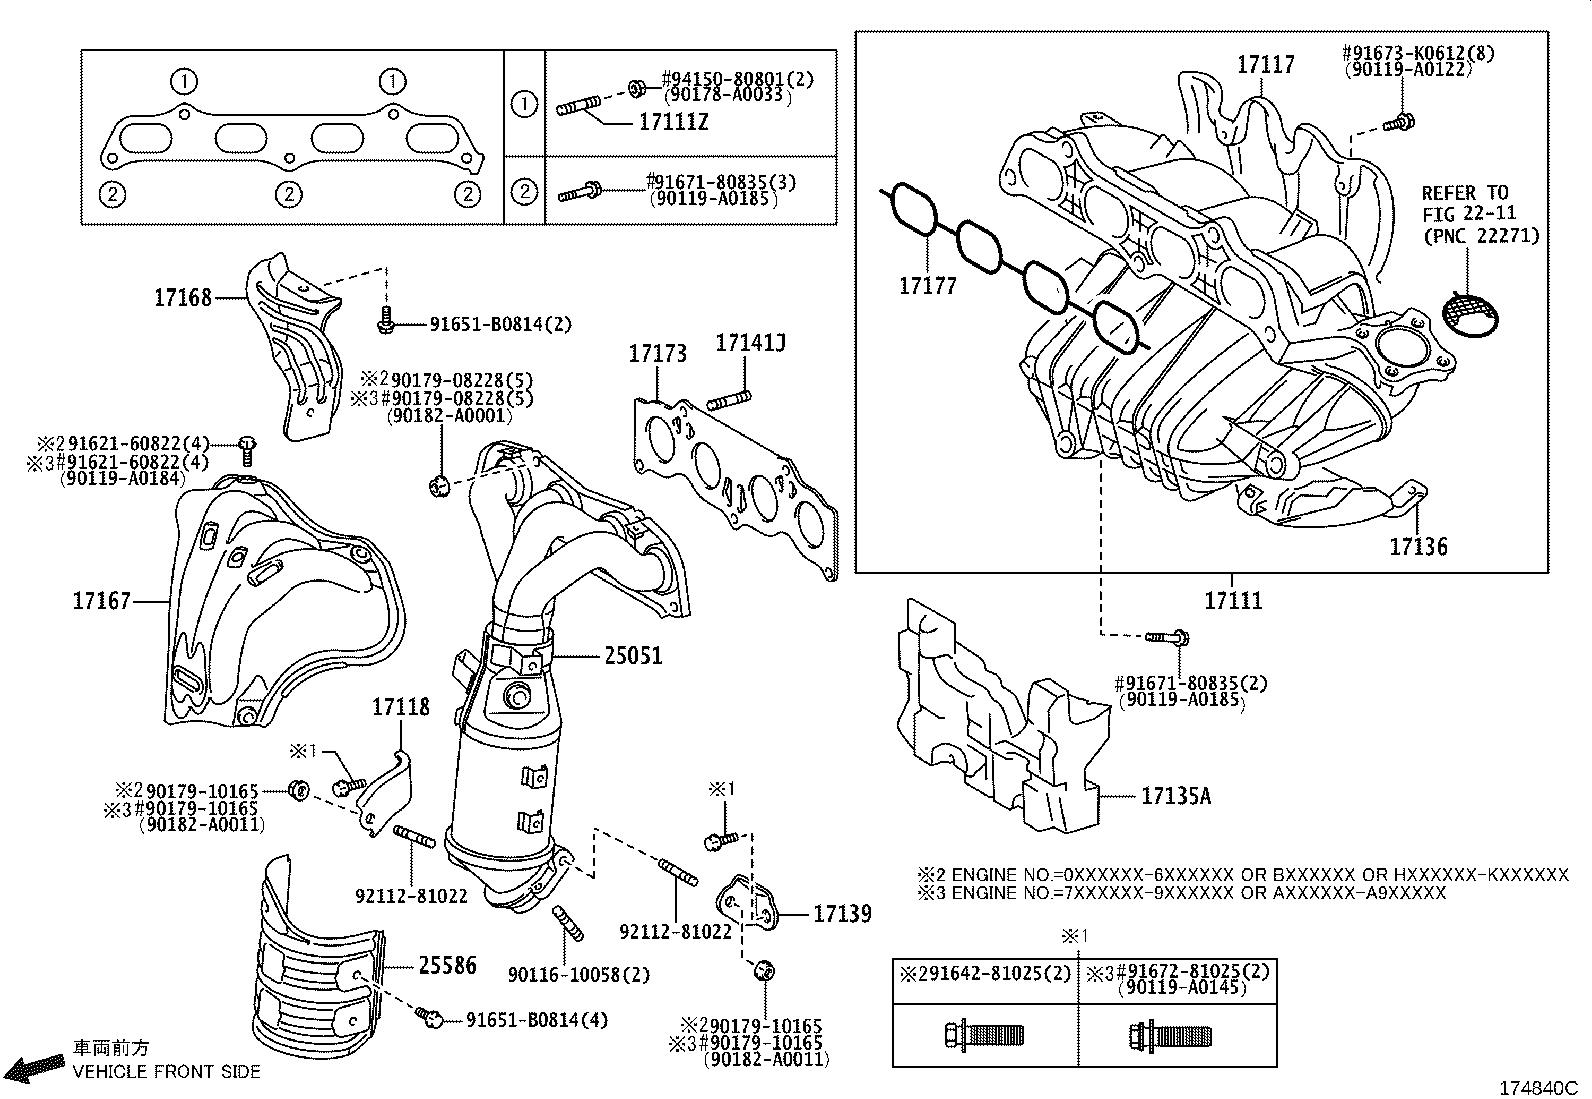 Toyota Camry Catalytic Converter With Integrated Exhaust